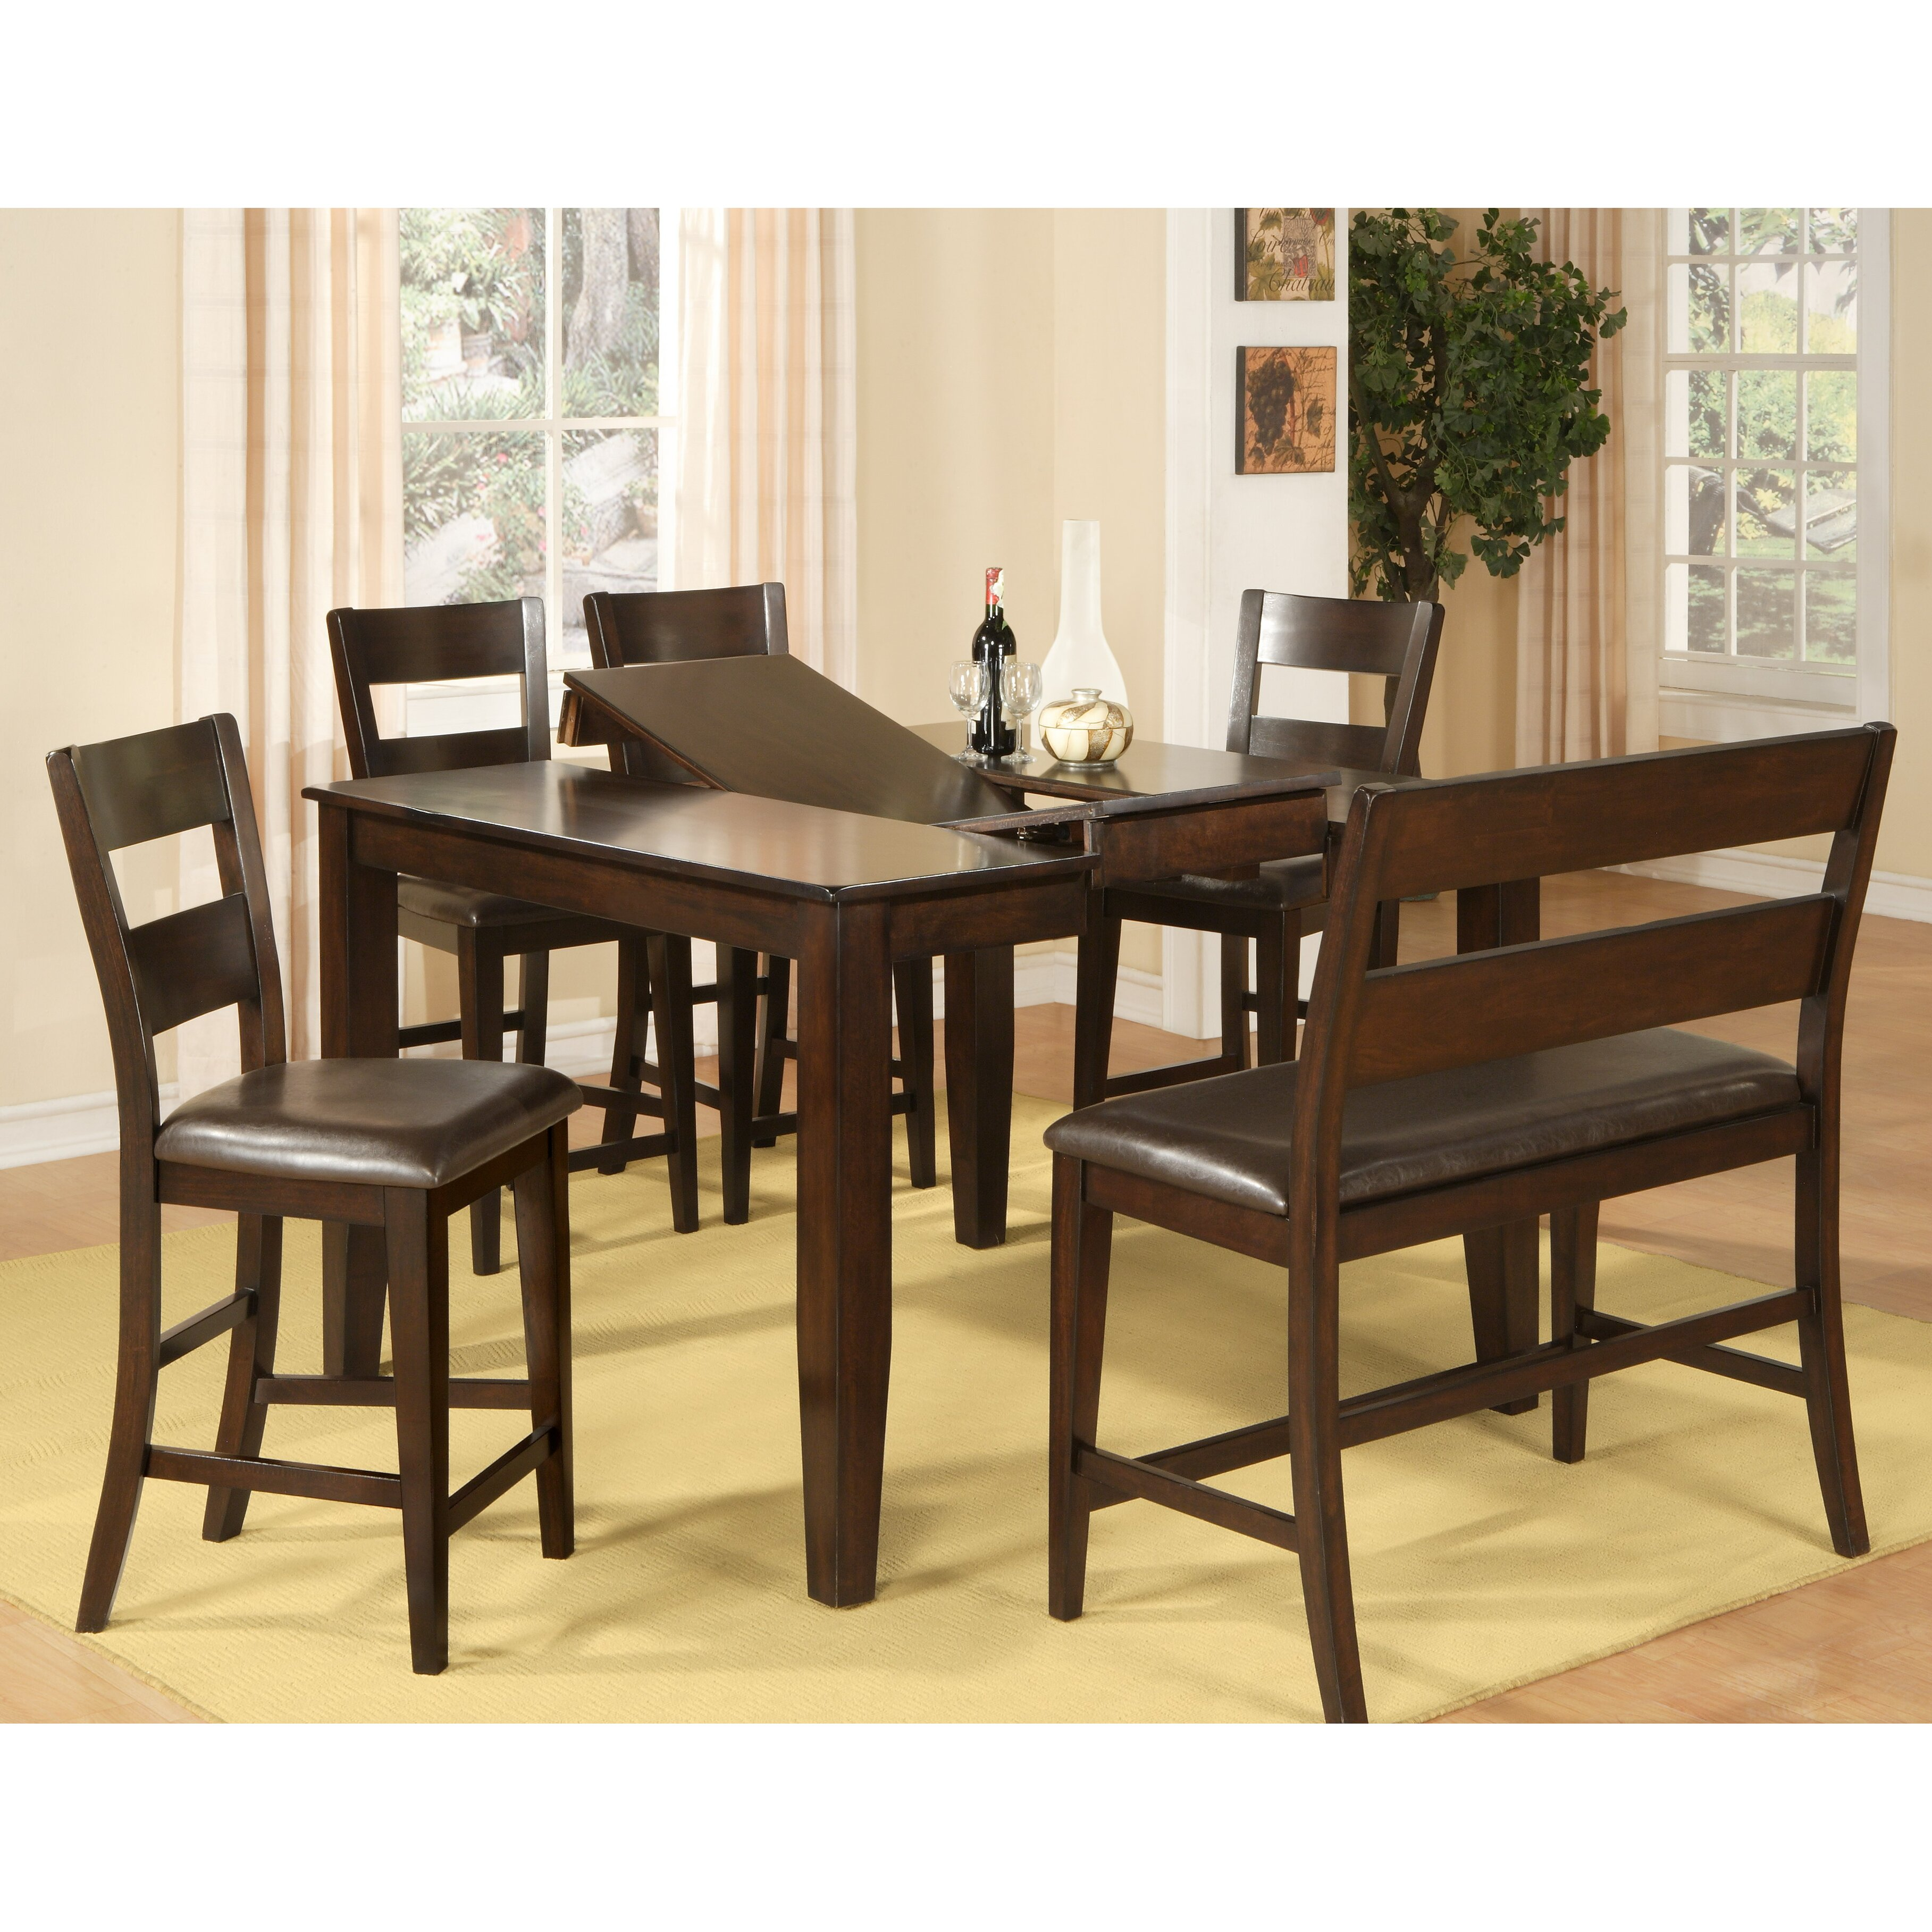 Wildon home counter height dining table reviews wayfair for Wildon home dining